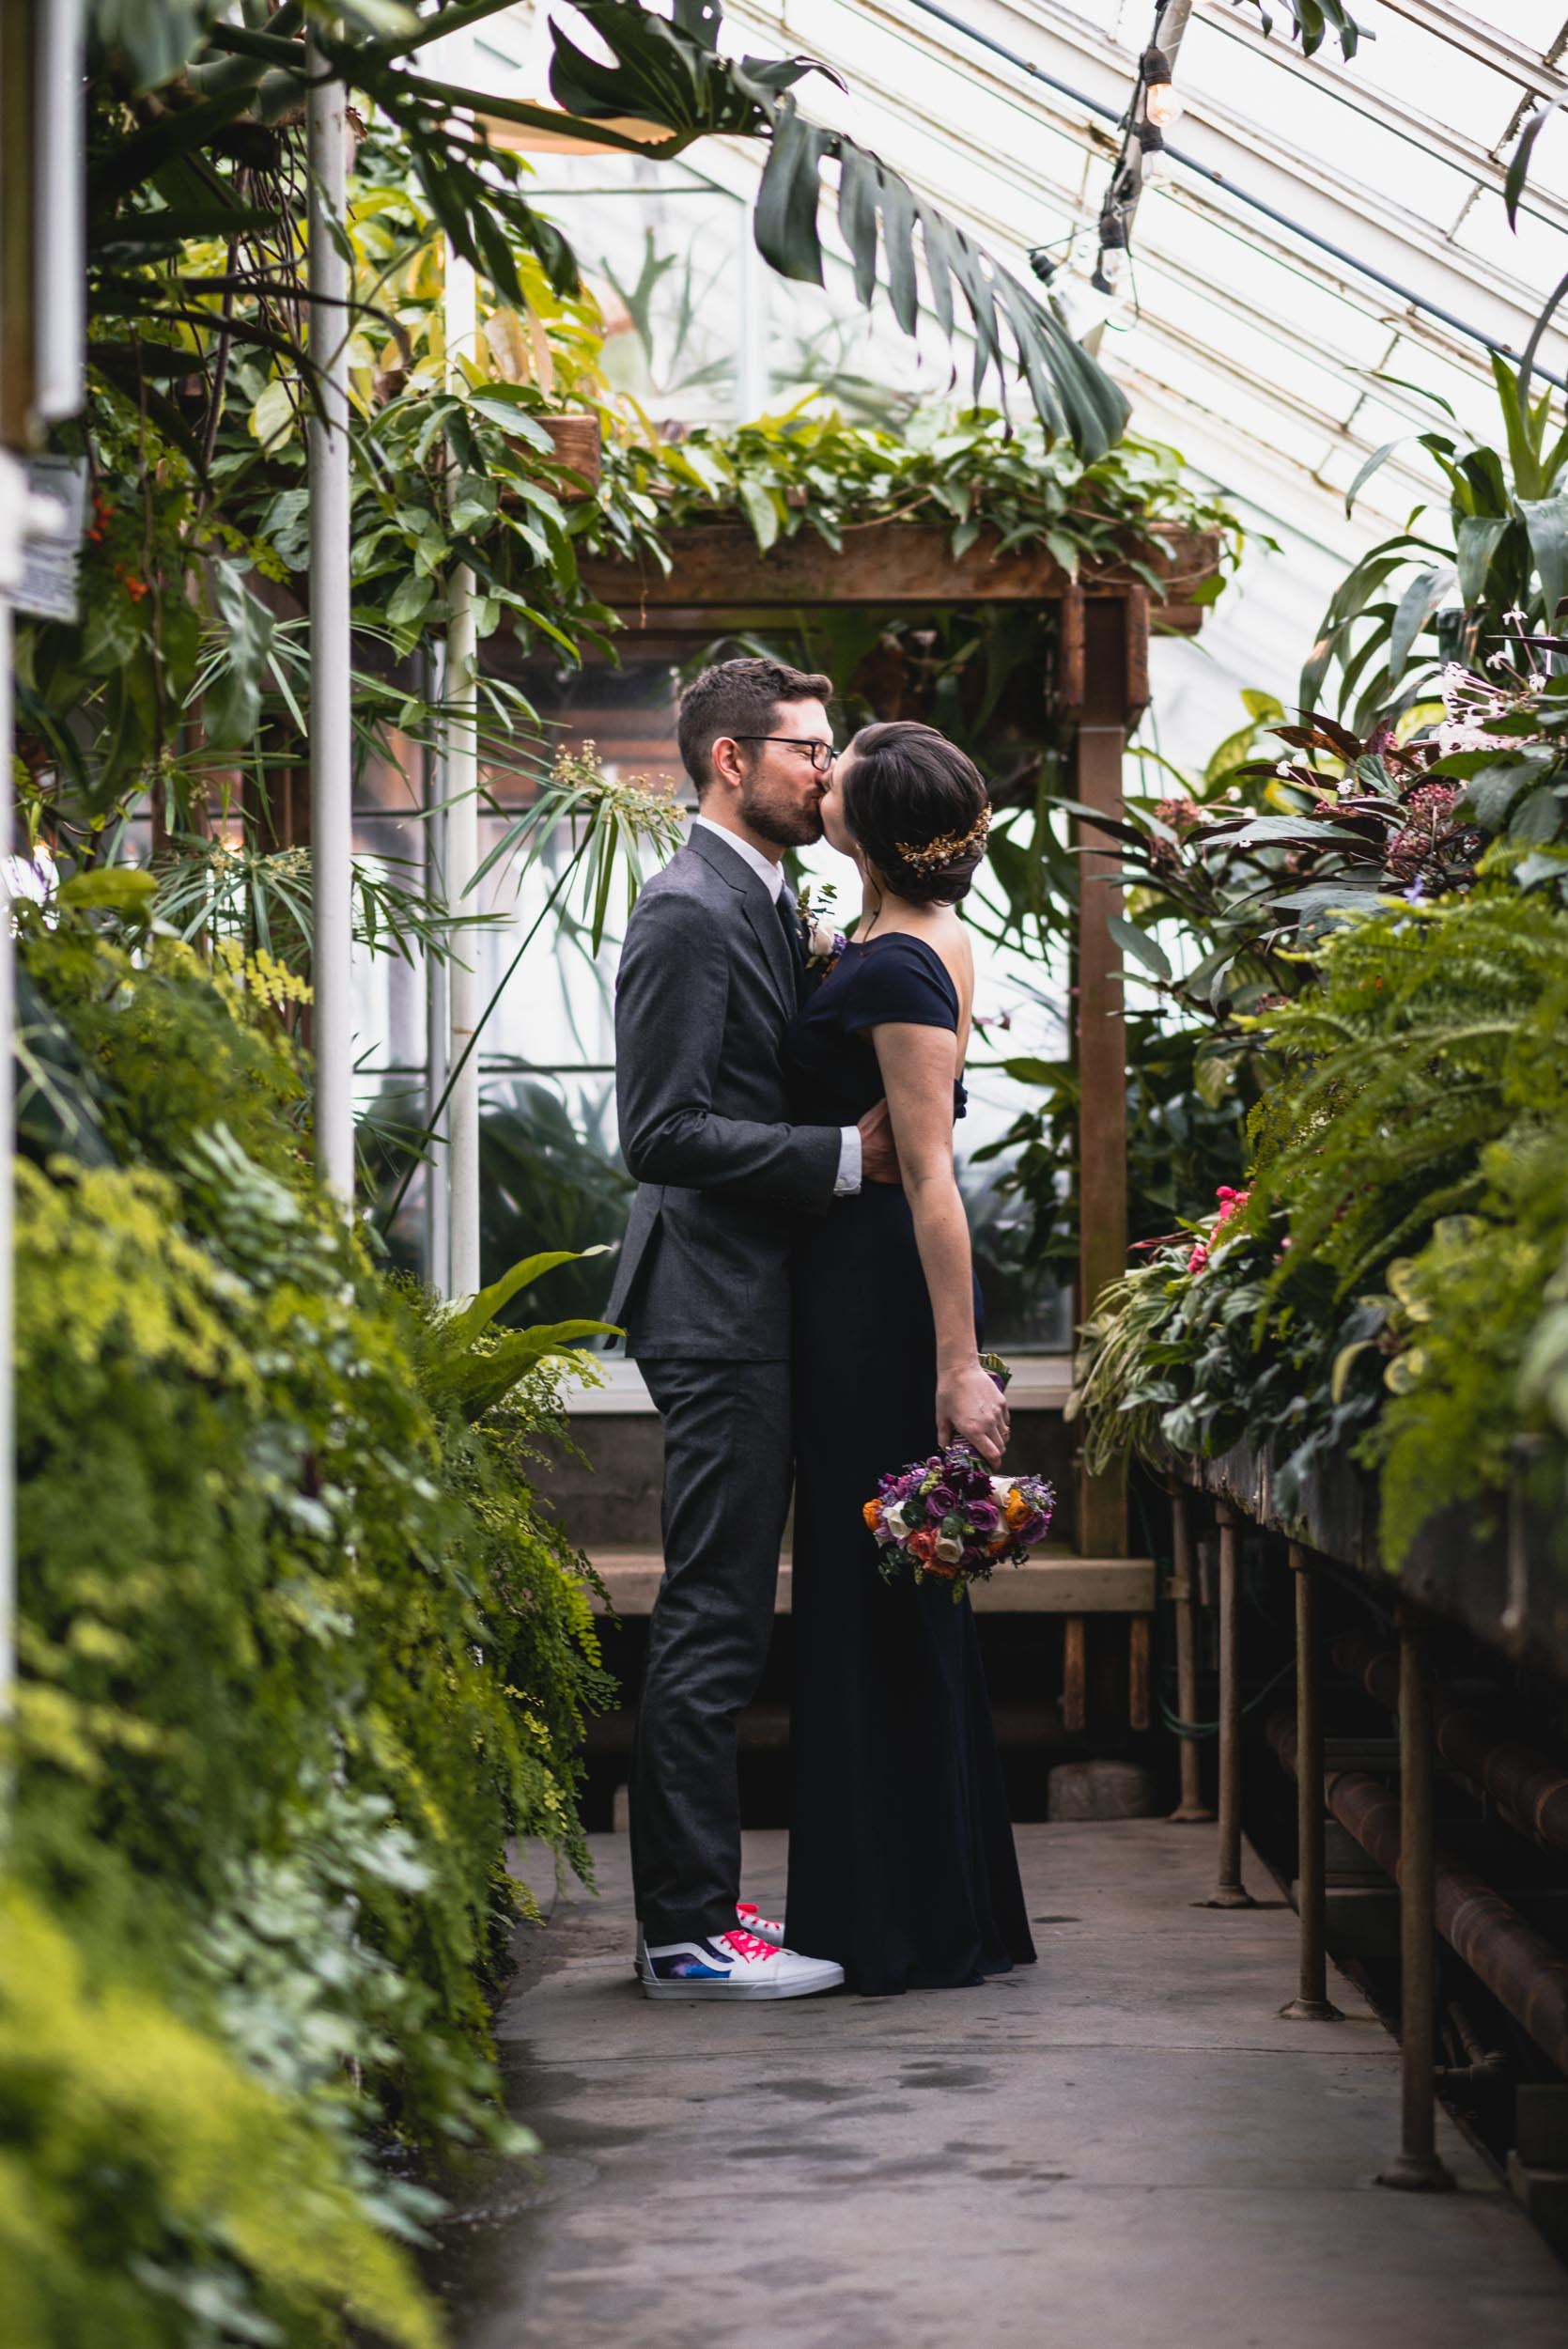 Bride and groom kiss among plants